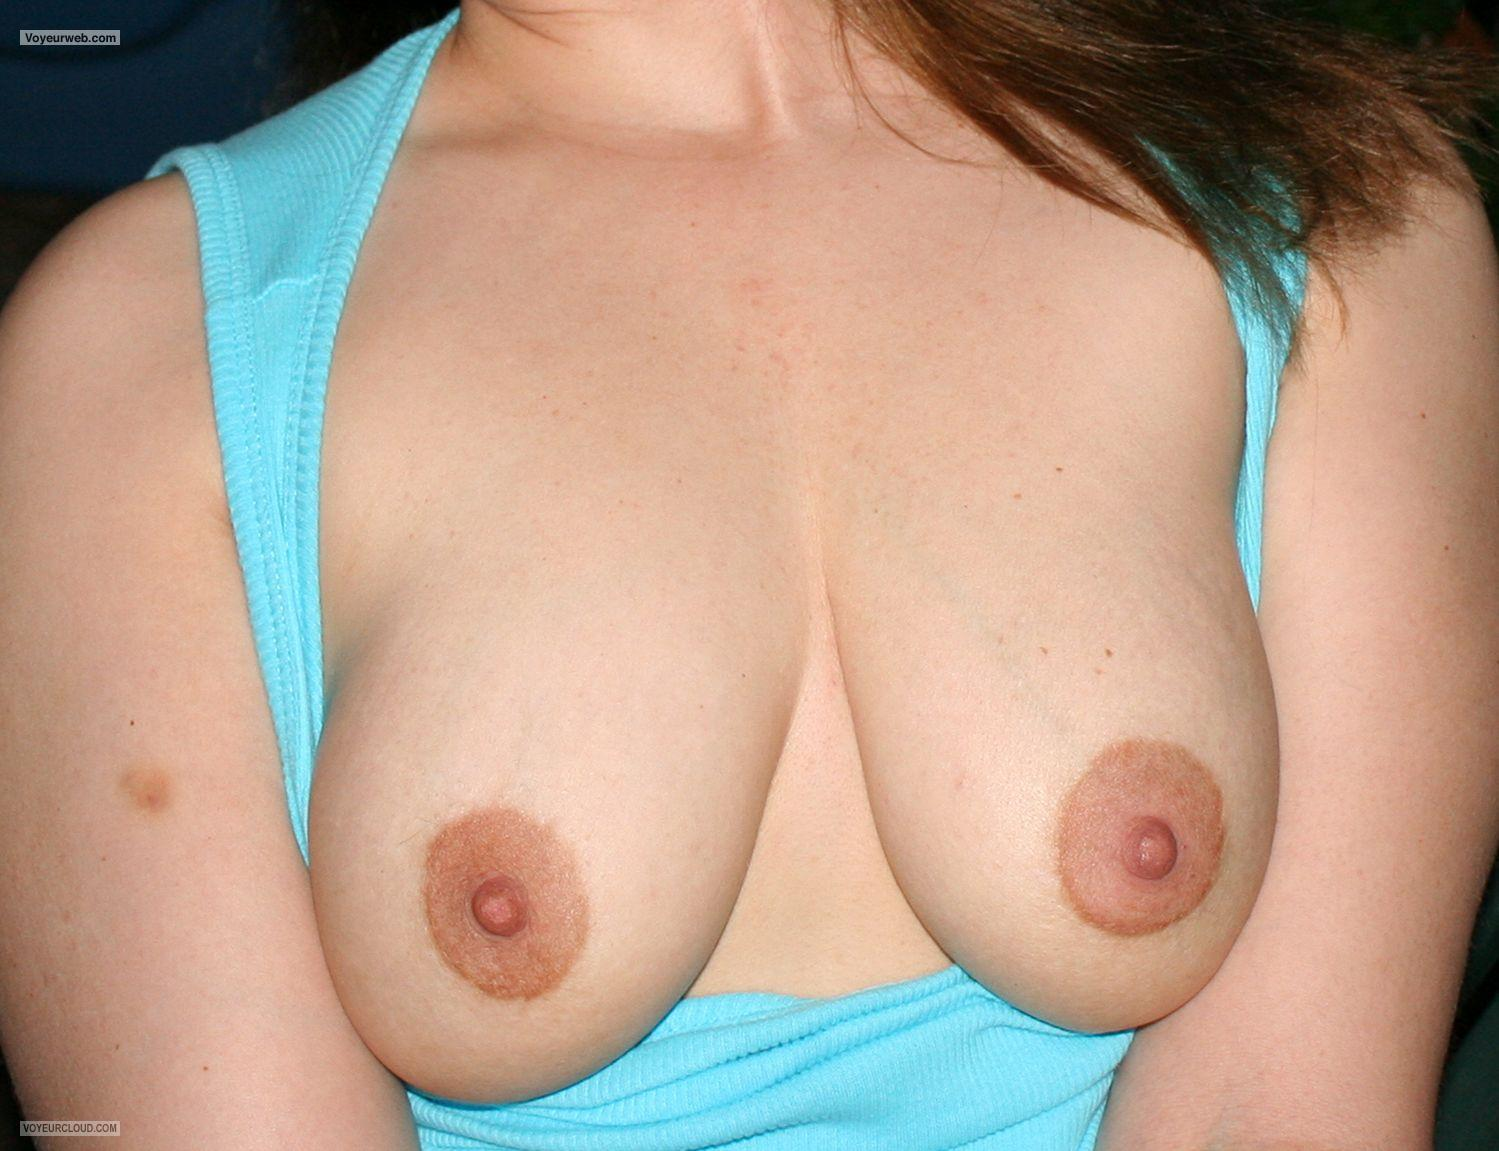 Tit Flash: Wife's Medium Tits - Tw from United States